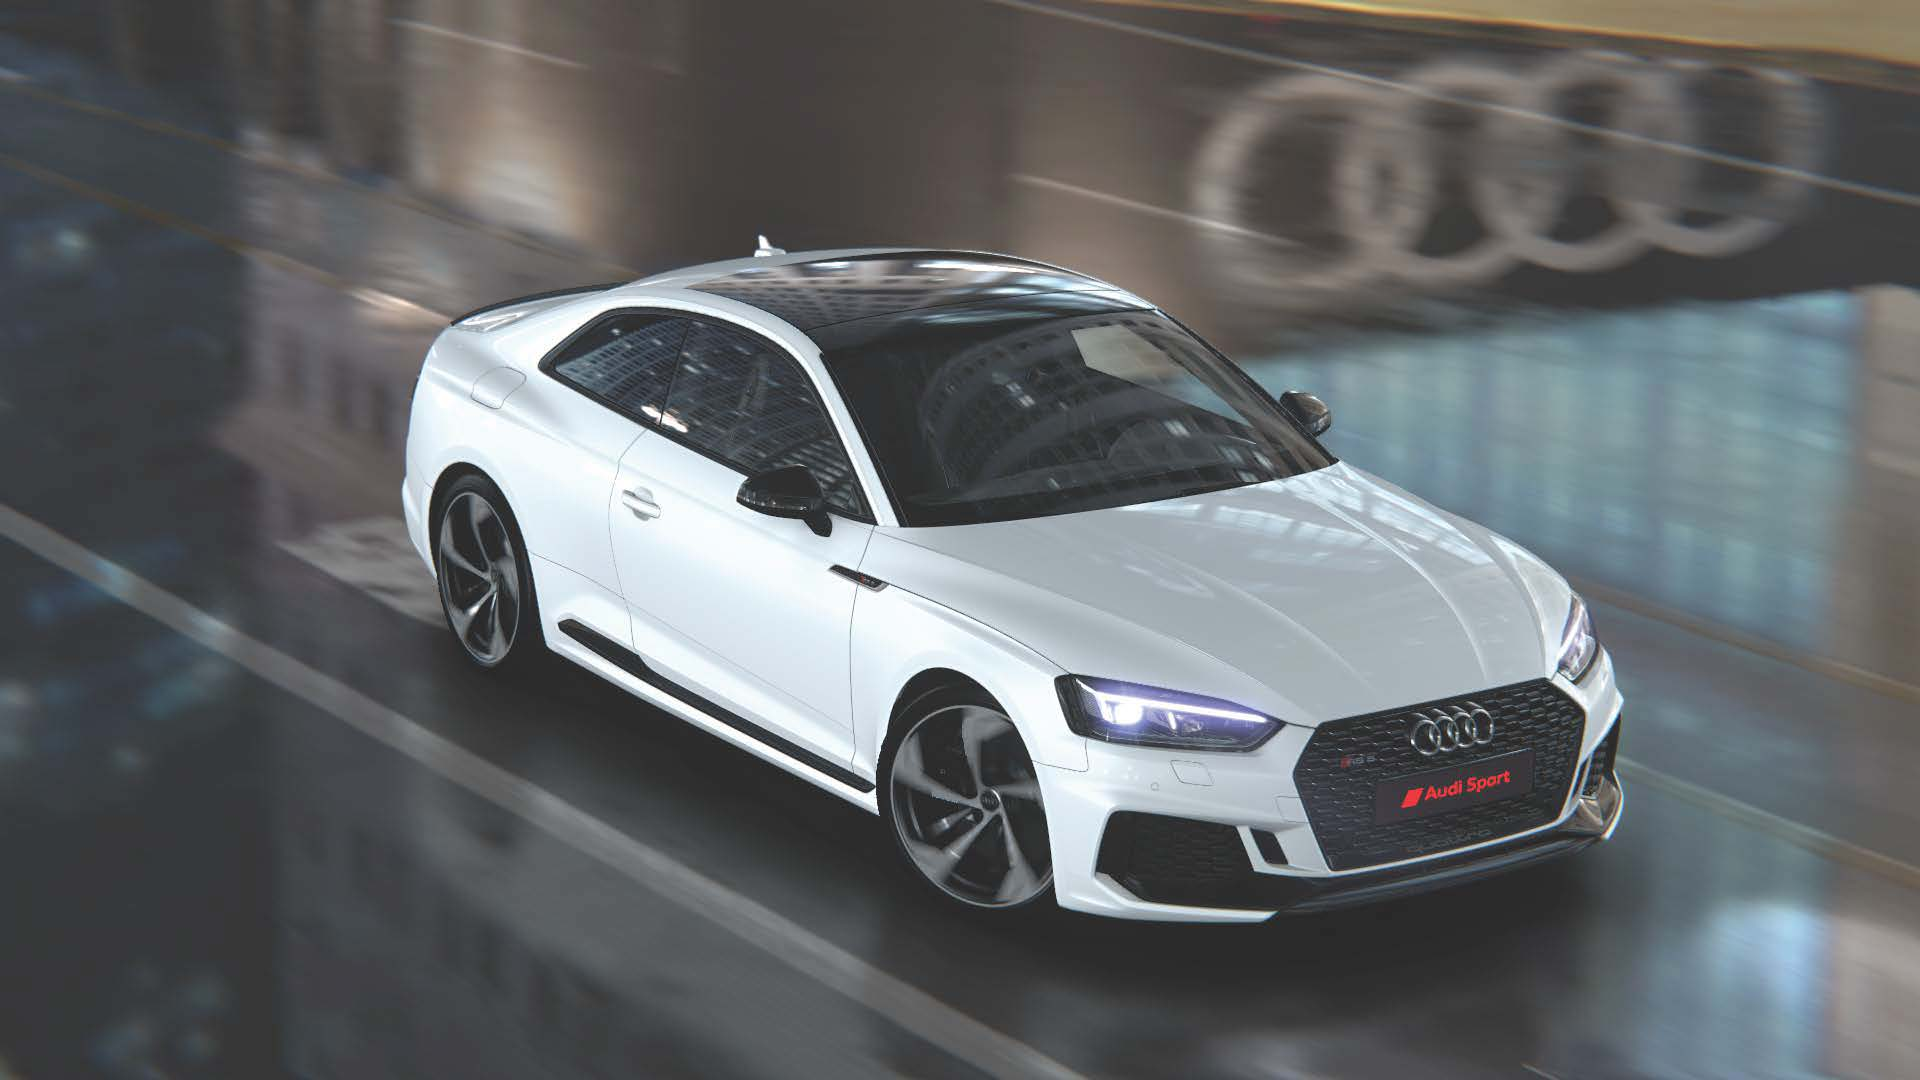 The RS5 Coupe returns to the line-up too